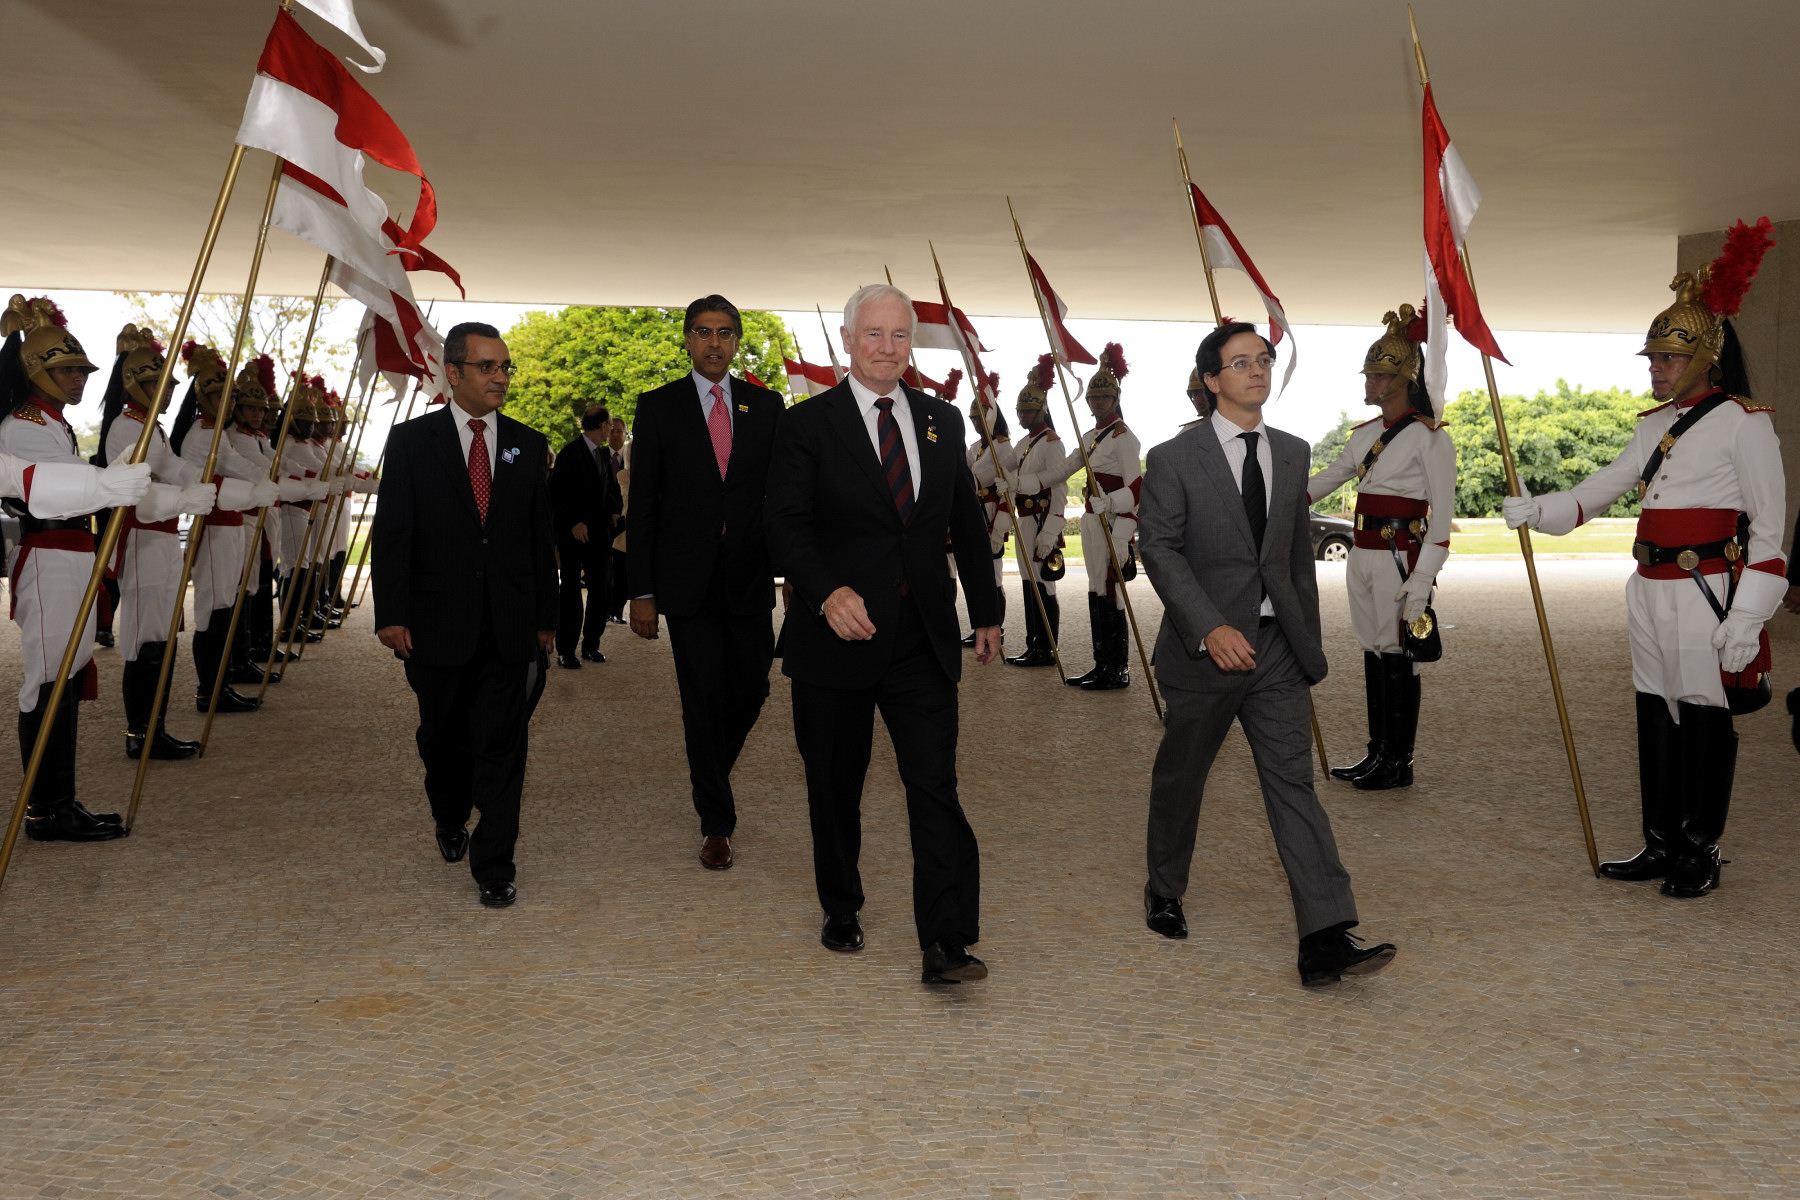 The Governor General arrives at Planalto Palace to meet with the President. He was accompanied by selected members of the Canadian delegation.